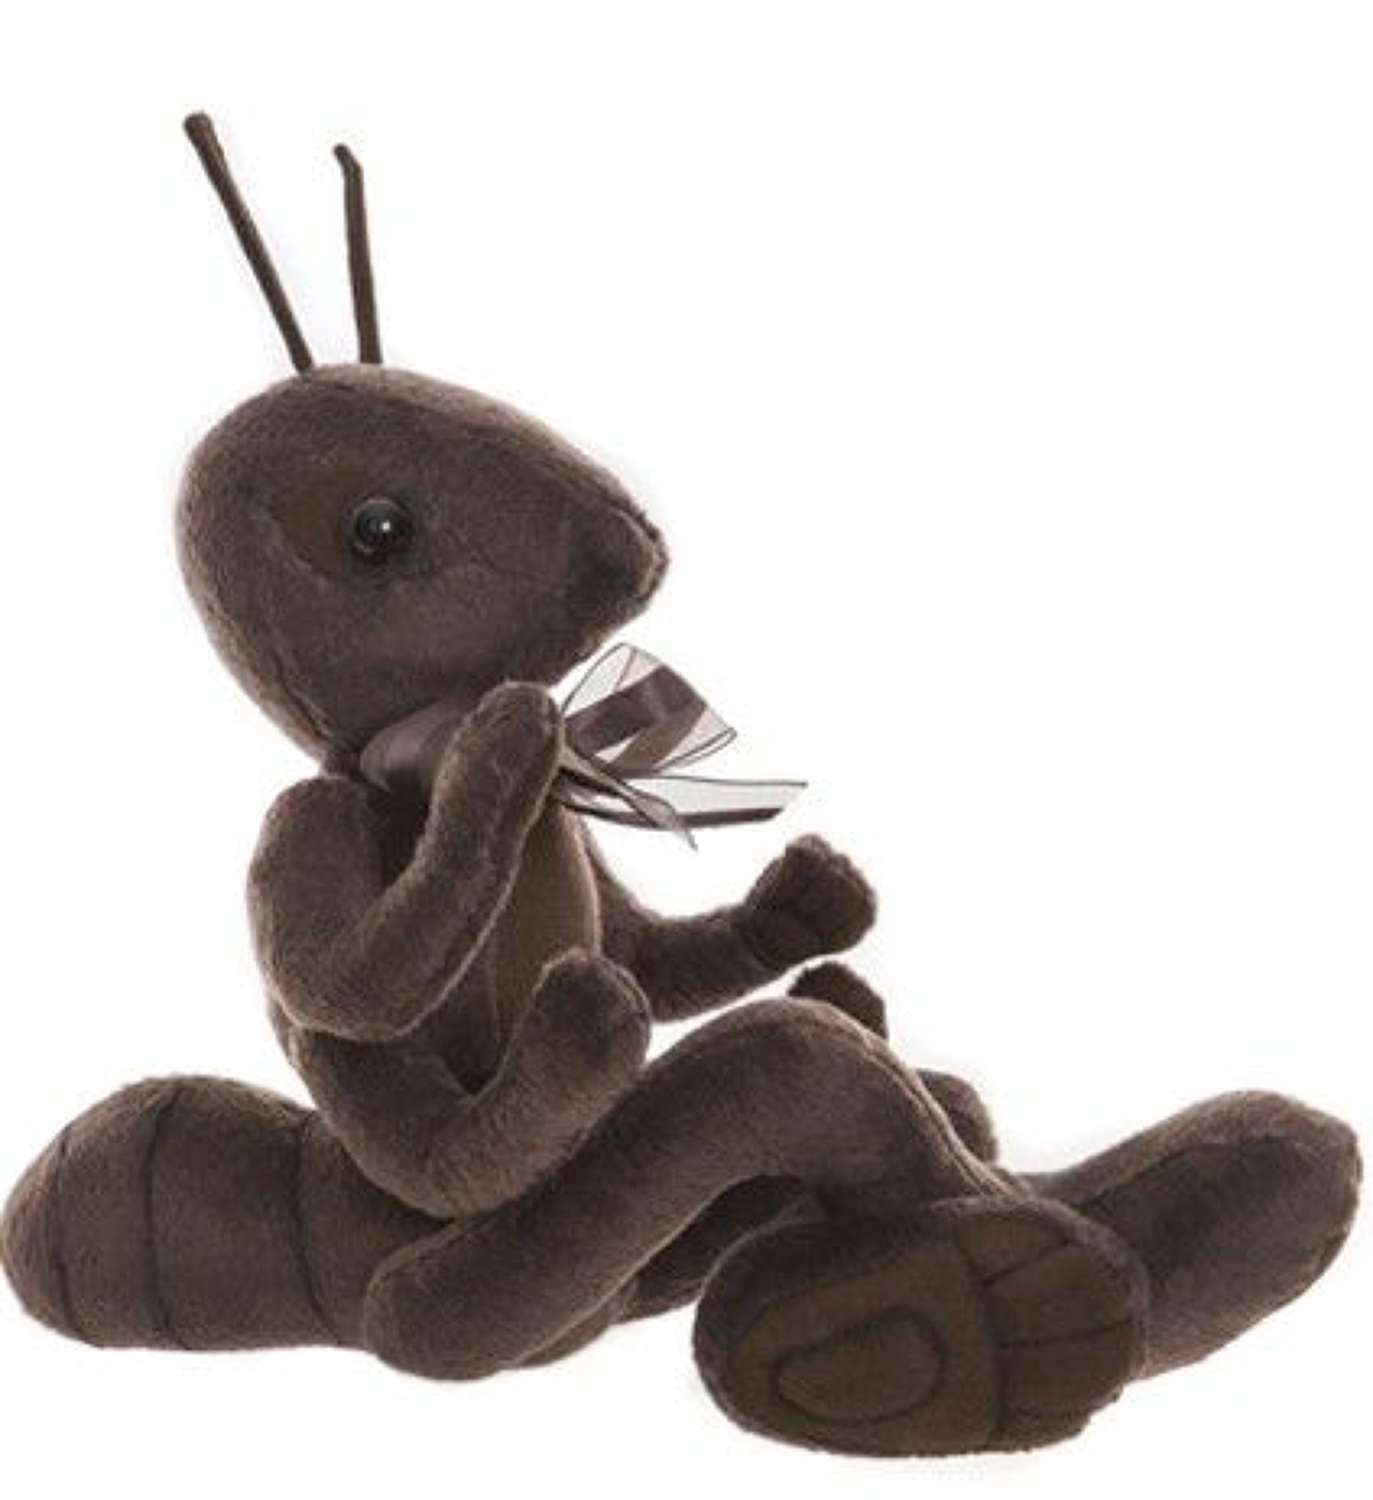 Charlie bear - Sarge(ant) from the fable The Ant & the grasshopper